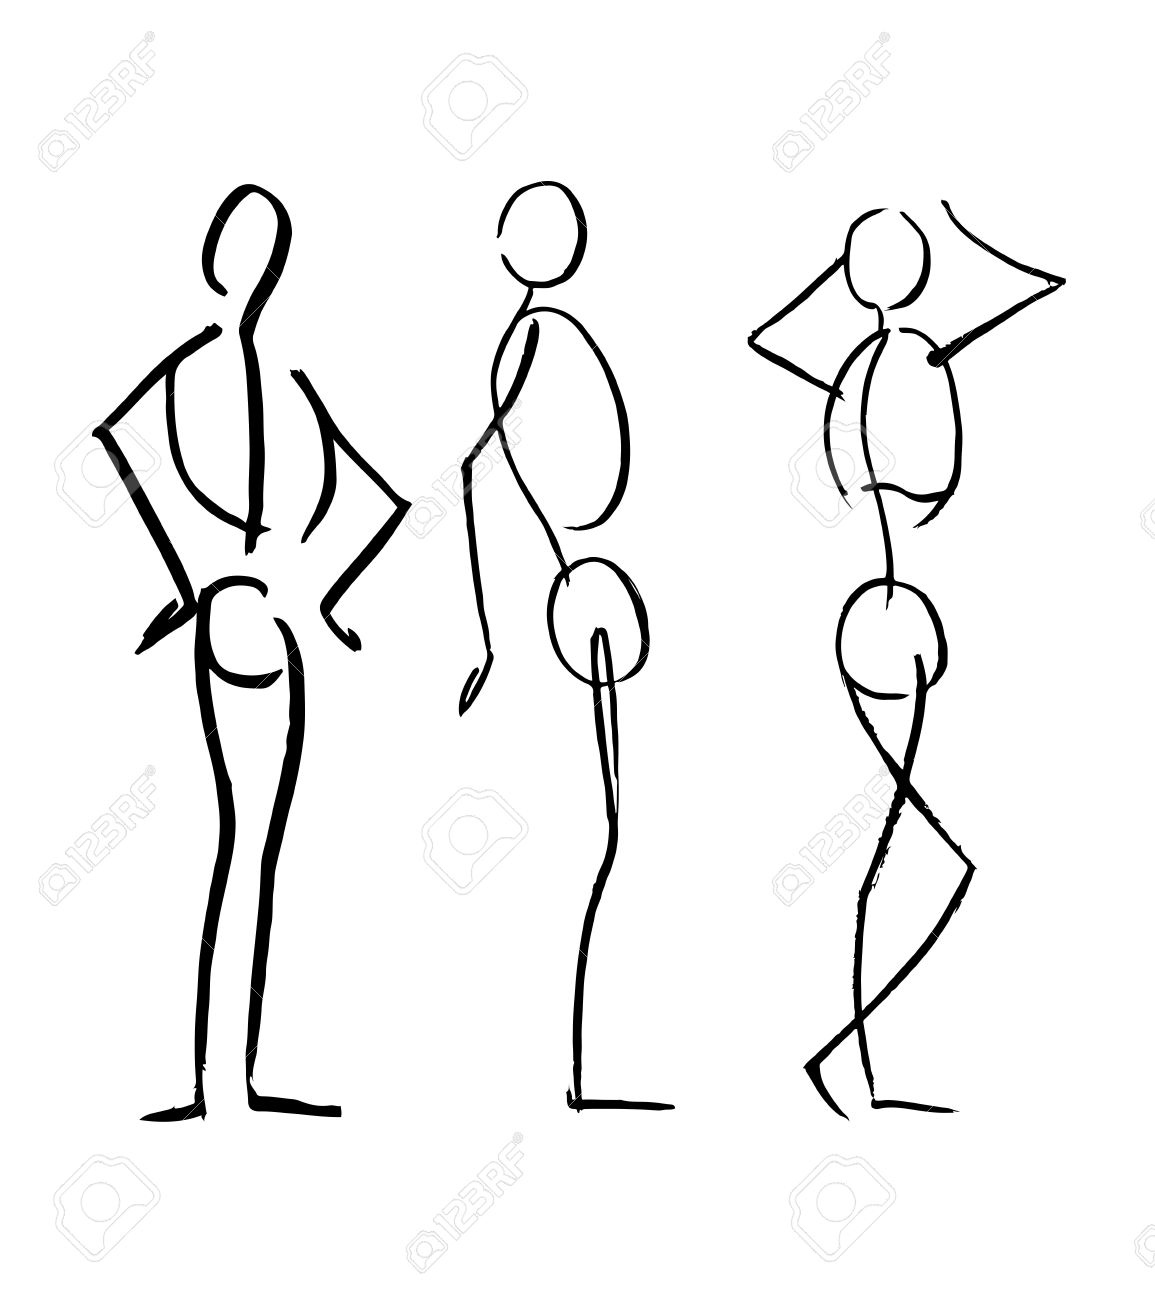 1155x1300 Hand Drawn Vector Illustration Or Drawing Of Different Men Human